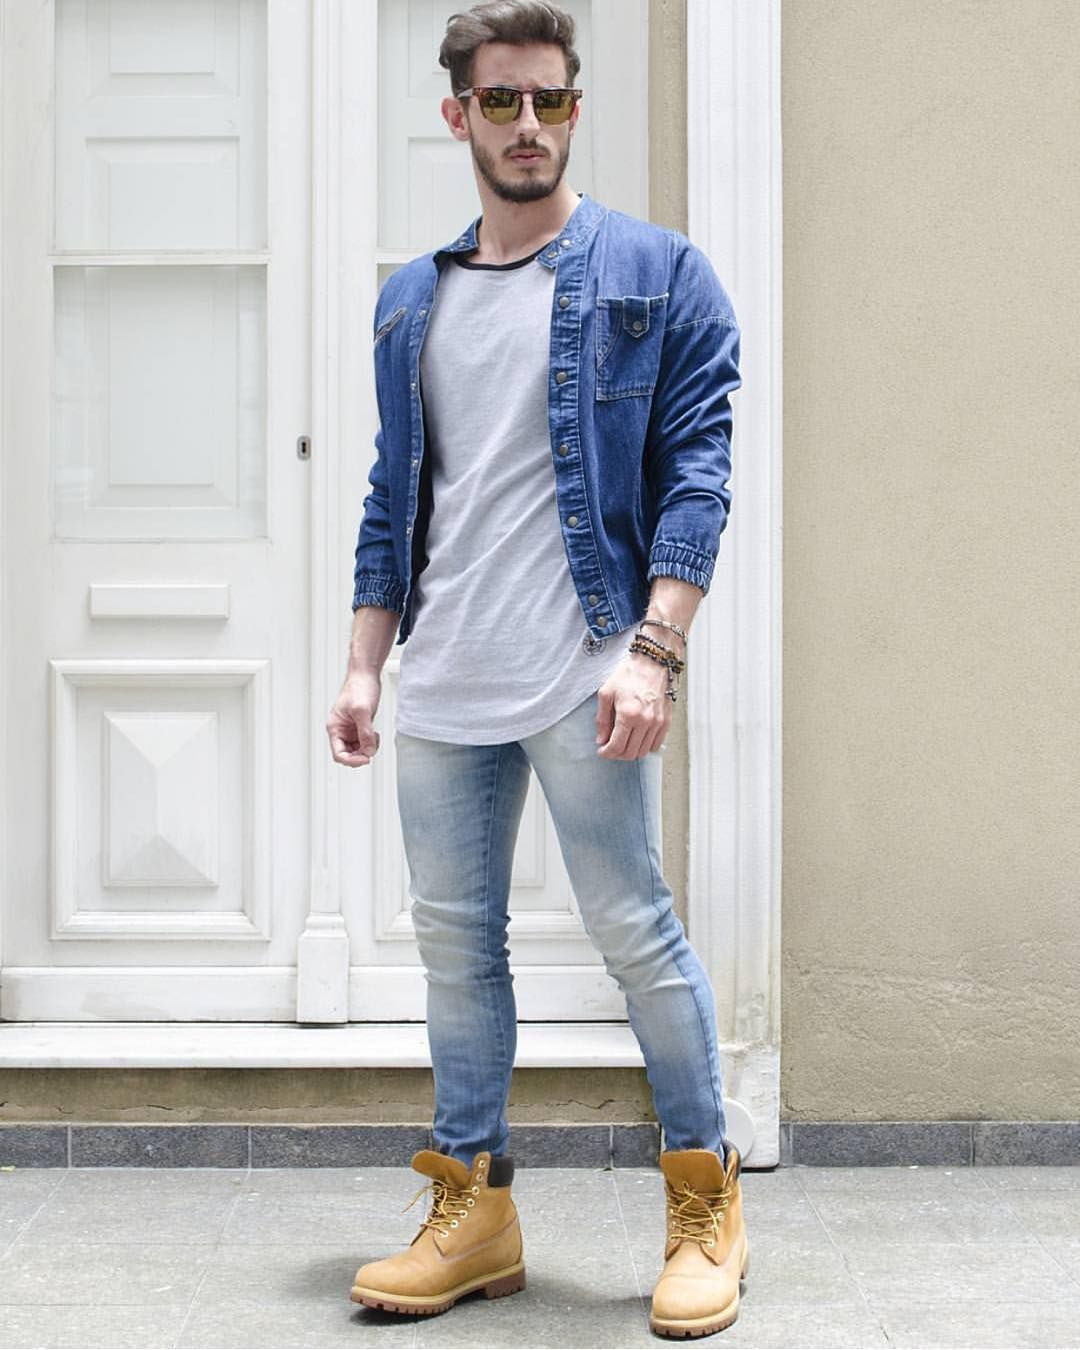 Men style fashion look clothing clothes man ropa moda para